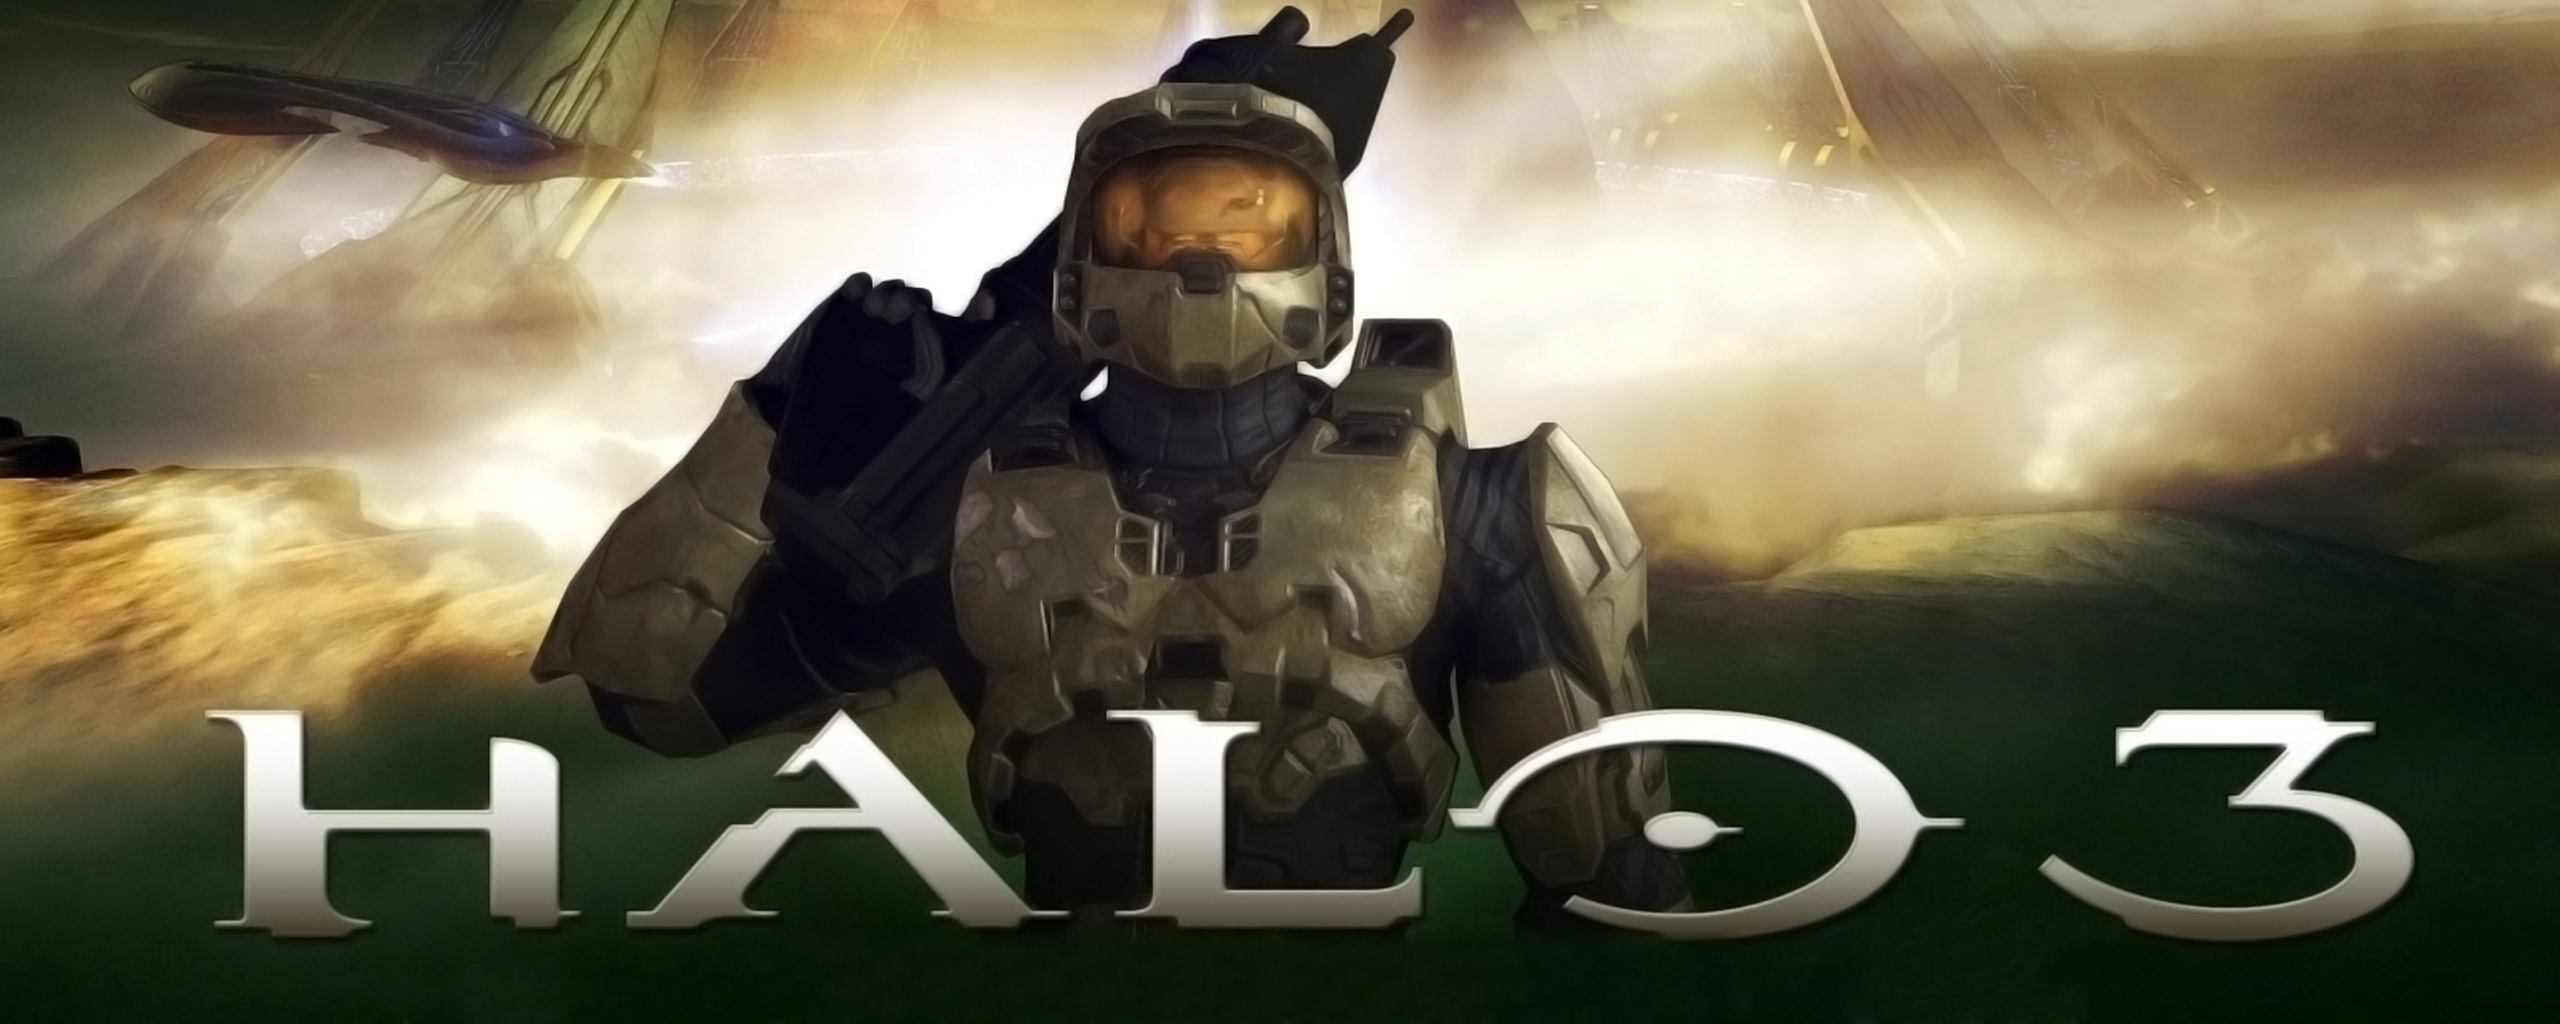 descargar halo 3 gratis para pc